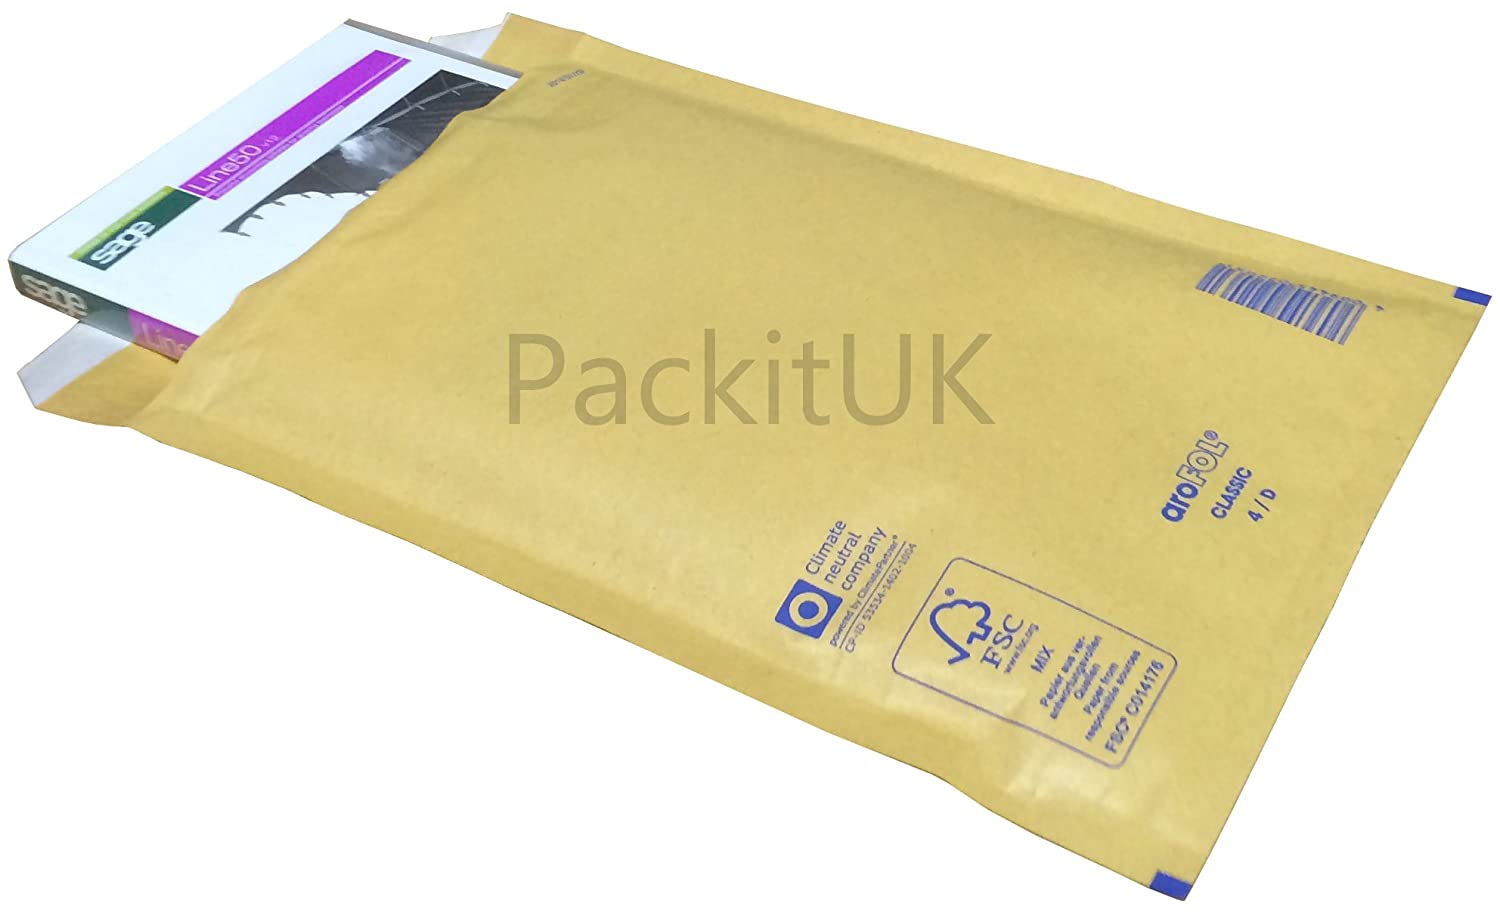 PackitUK 1709-50 200 x 275 mm Arofol Size D AR04 Padded Bubble Lined Mailers Cushioned Envelope - Gold (Pack of 50)